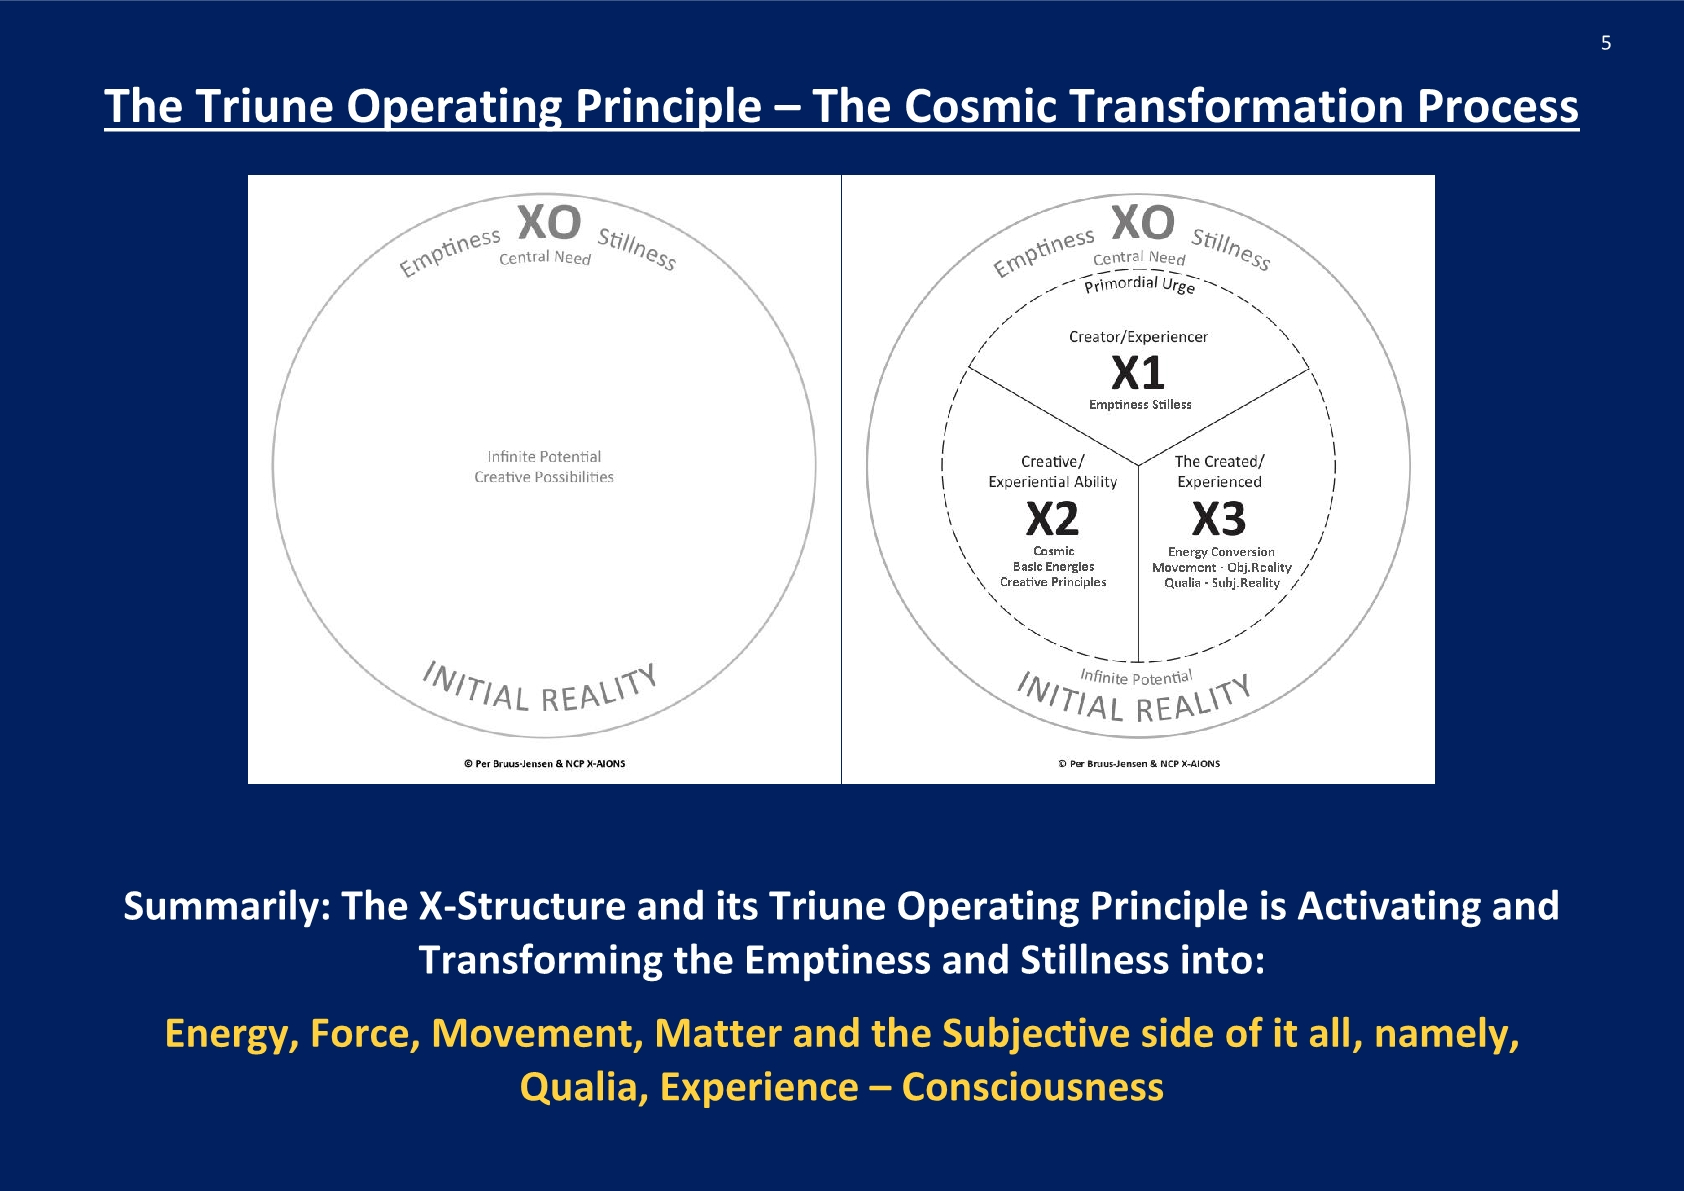 The Triune Operating Principle; NCP X-AIONS